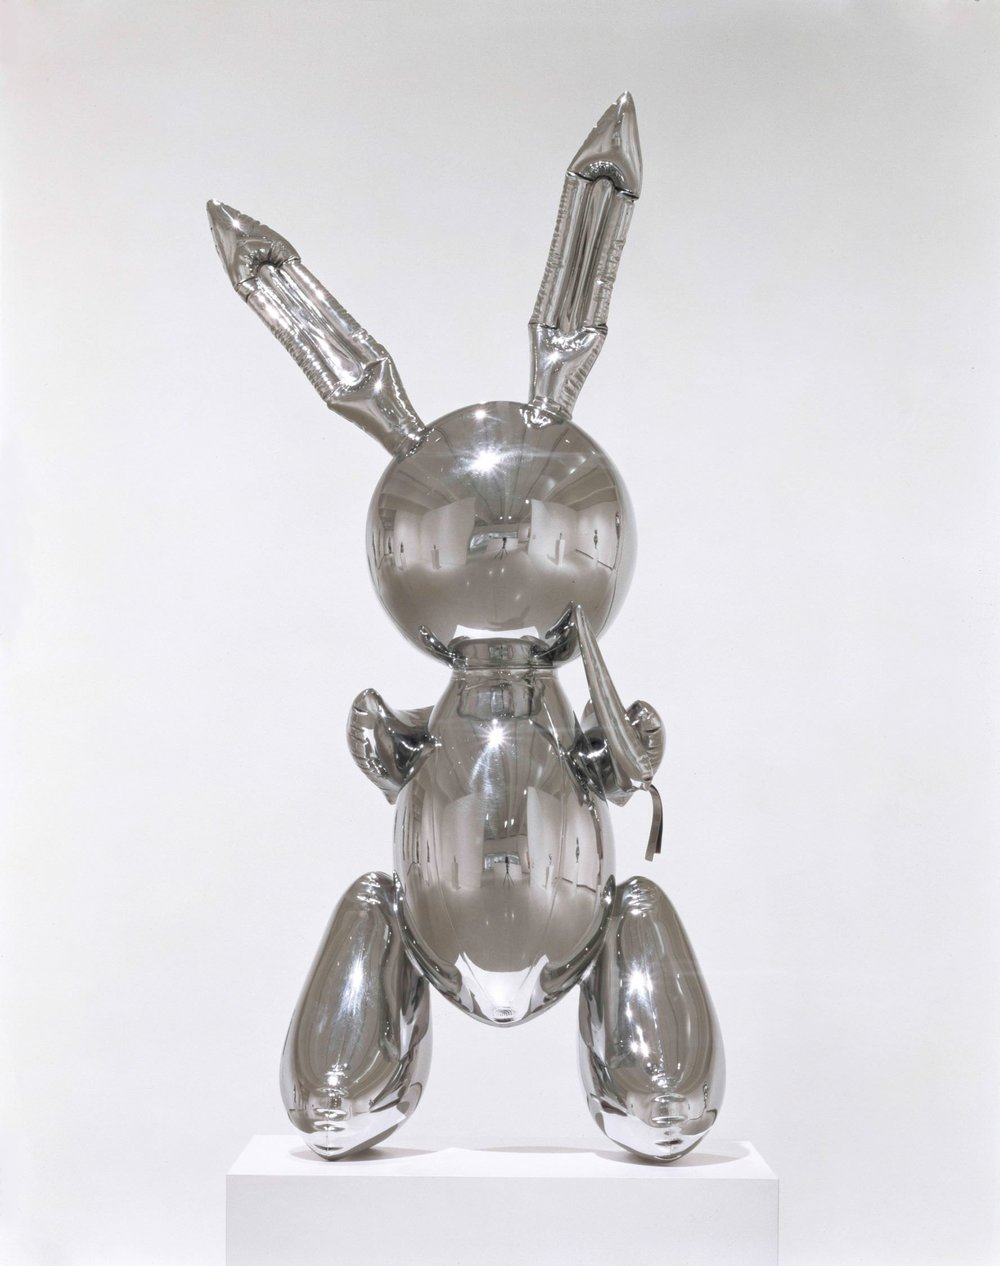 Jeff Koons (b. 1955); Rabbit; 1986; Stainless steel; 104.1 x 48.3 x 30.5 cm; Edition 3 of and edition of 3 plus AP; The Eli and Edythe L. Broad Collection © Jeff Koons